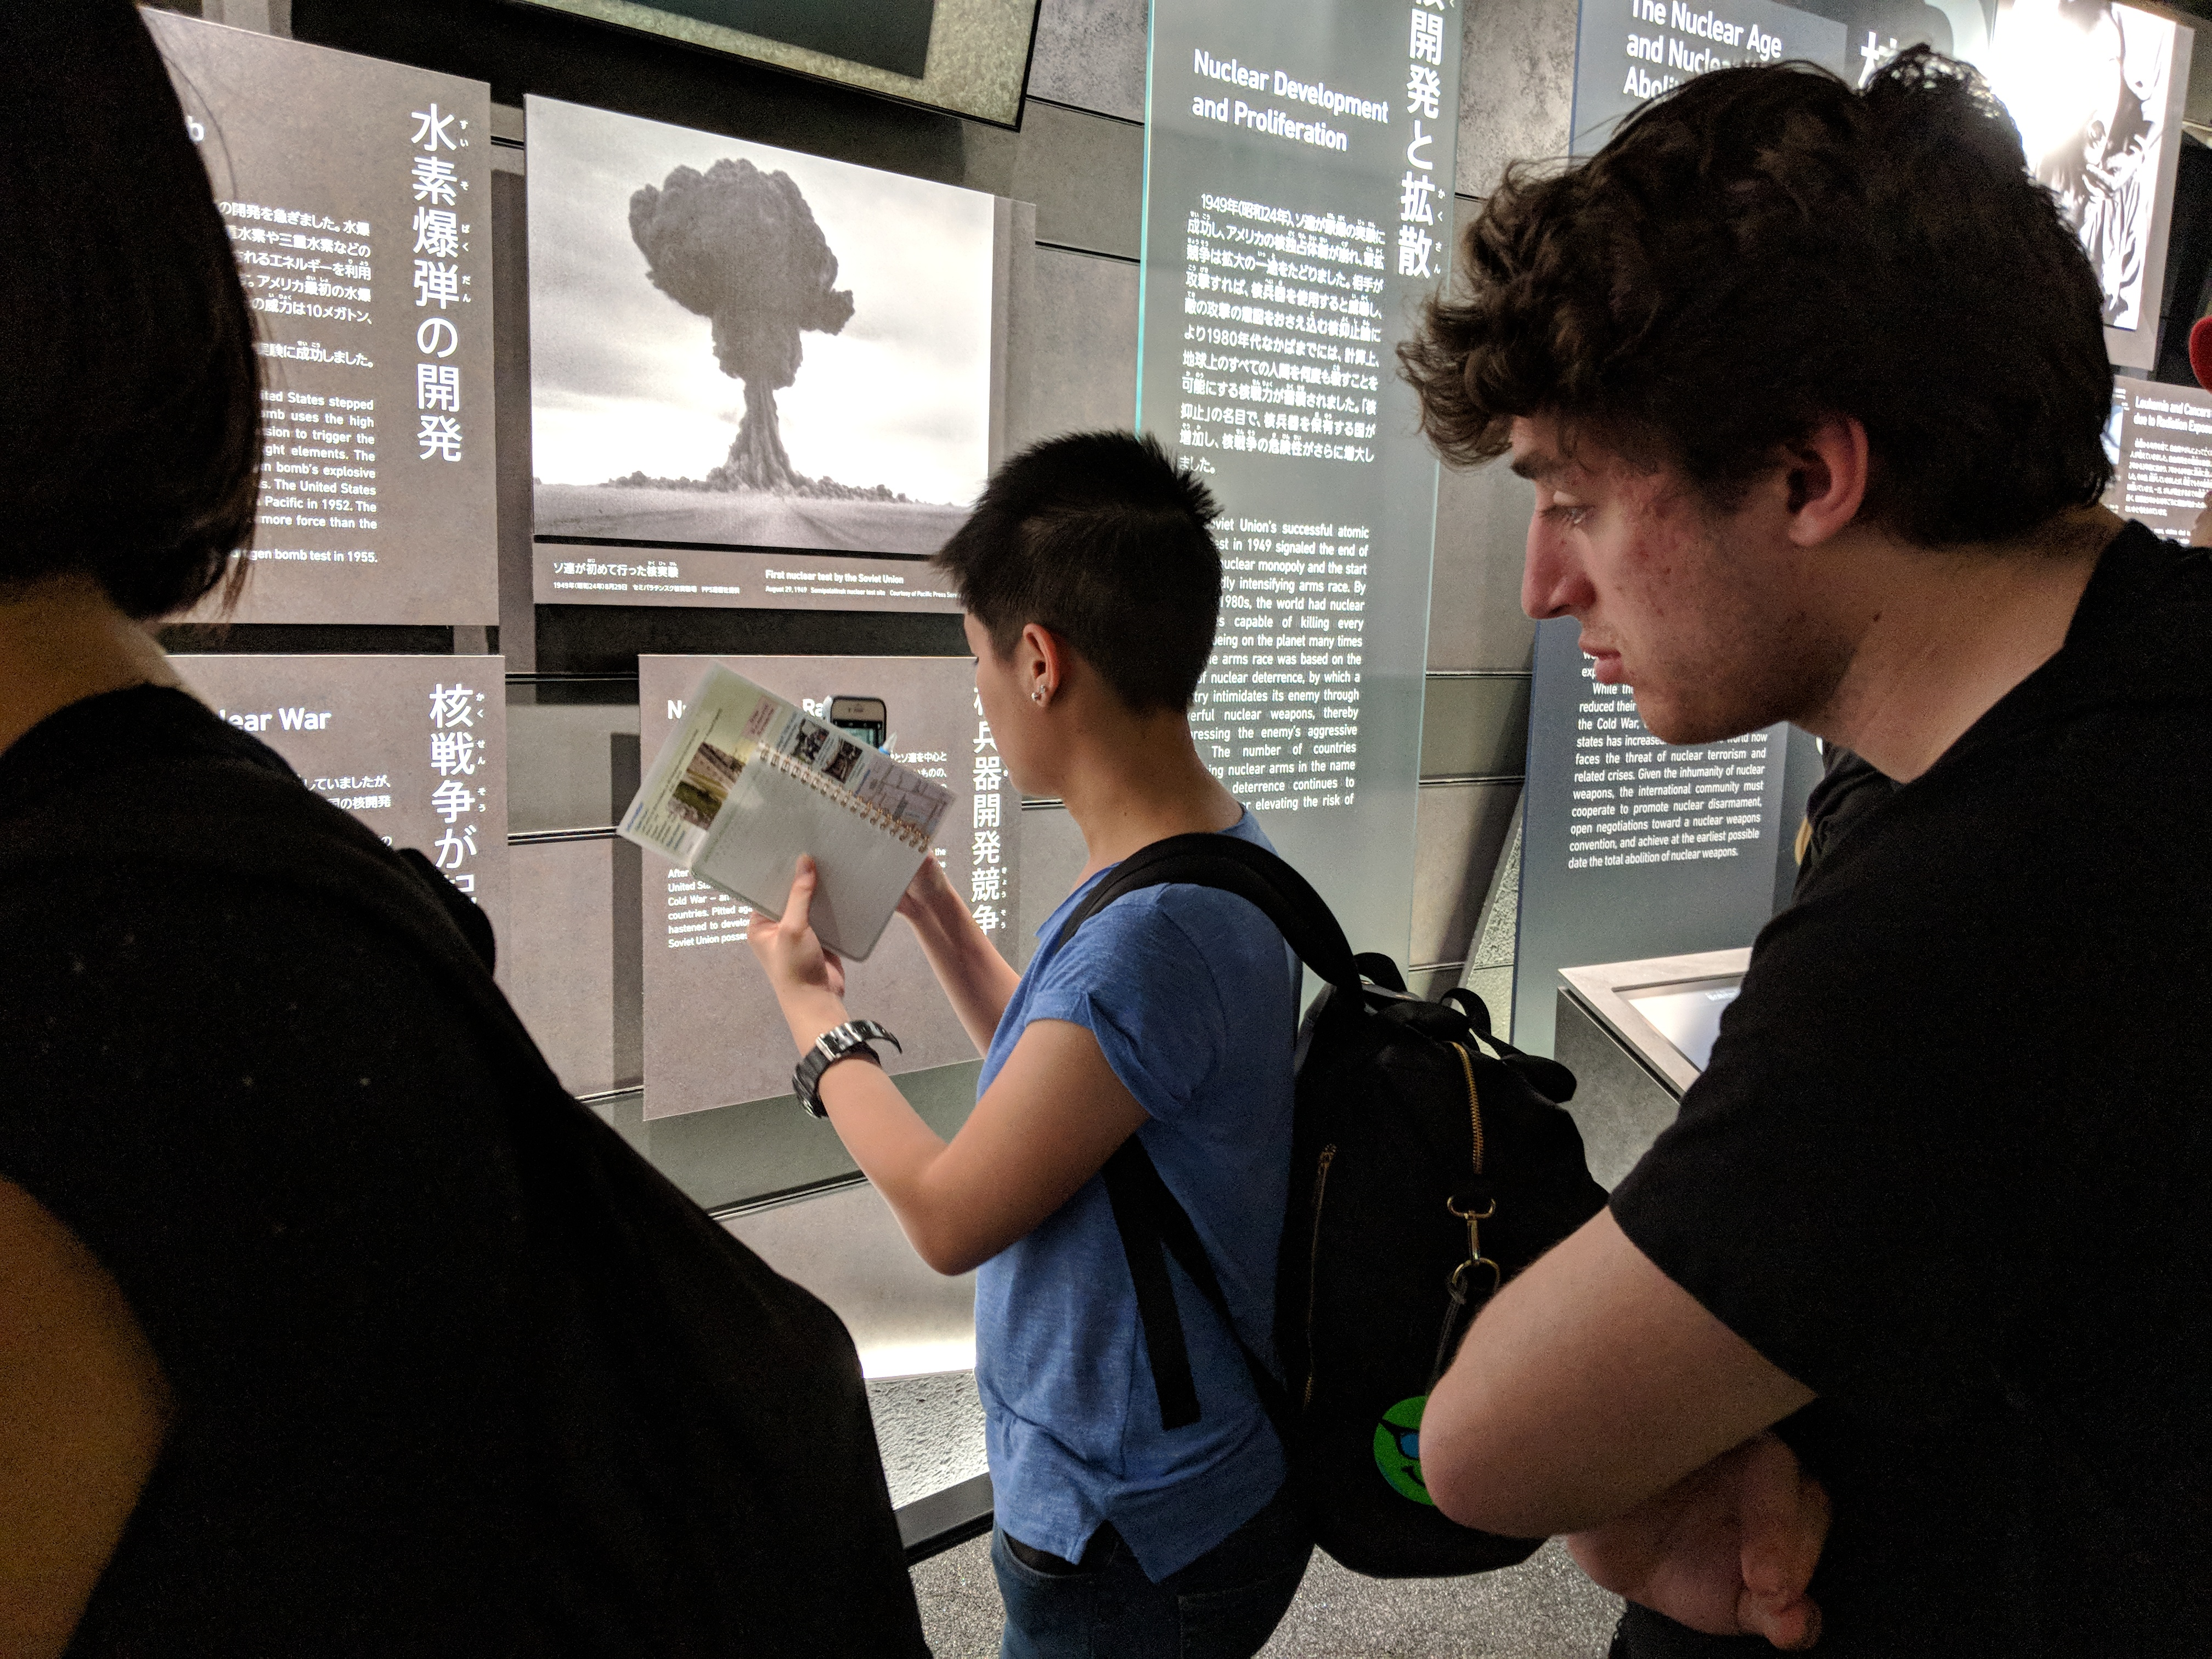 Students looking at an exhibit in the Hiroshima Peace Park Museum